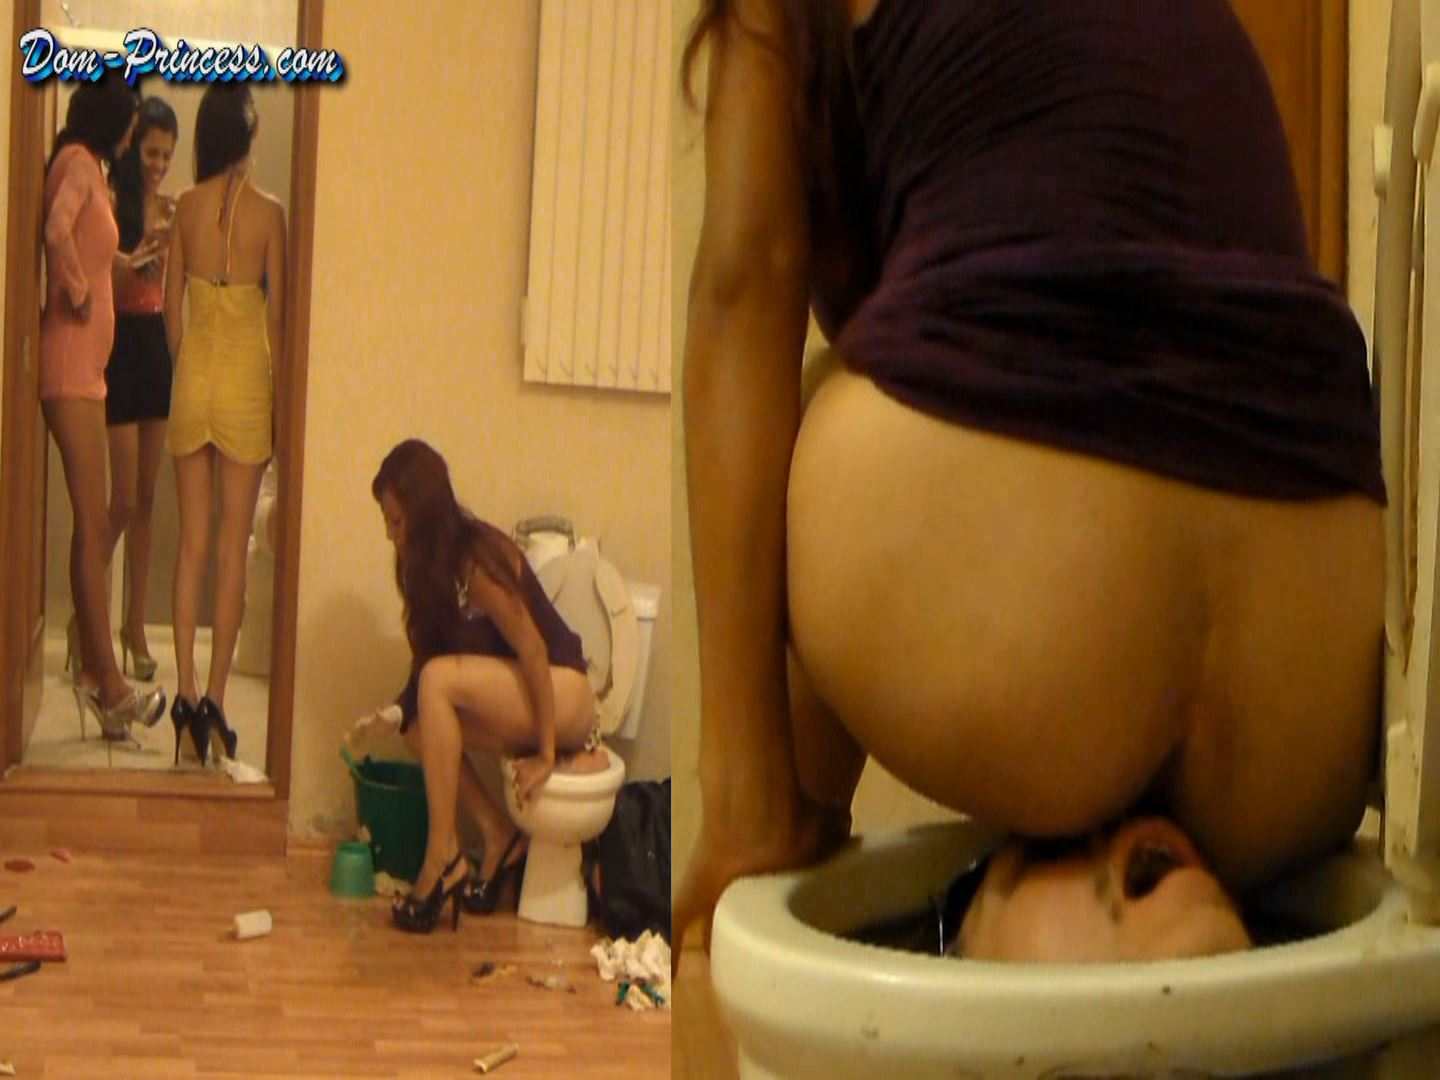 [SCAT-PRINCESS] Human Toilet Bowl locked Part 9 Marie [FULL HD][1080p][WMV]